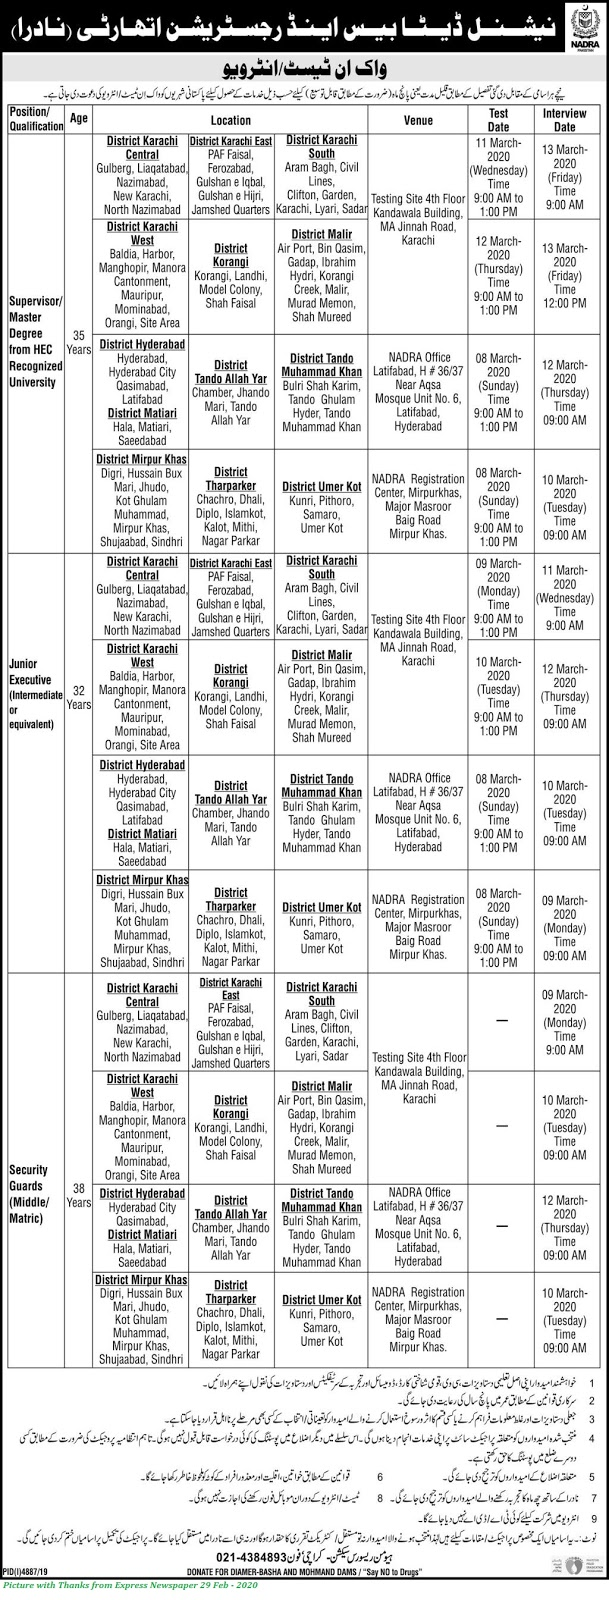 Nadra Karachi Region Jobs 2020 - Latest Jobs in Nadra for Males & Females in Various Cities of Karachi Region